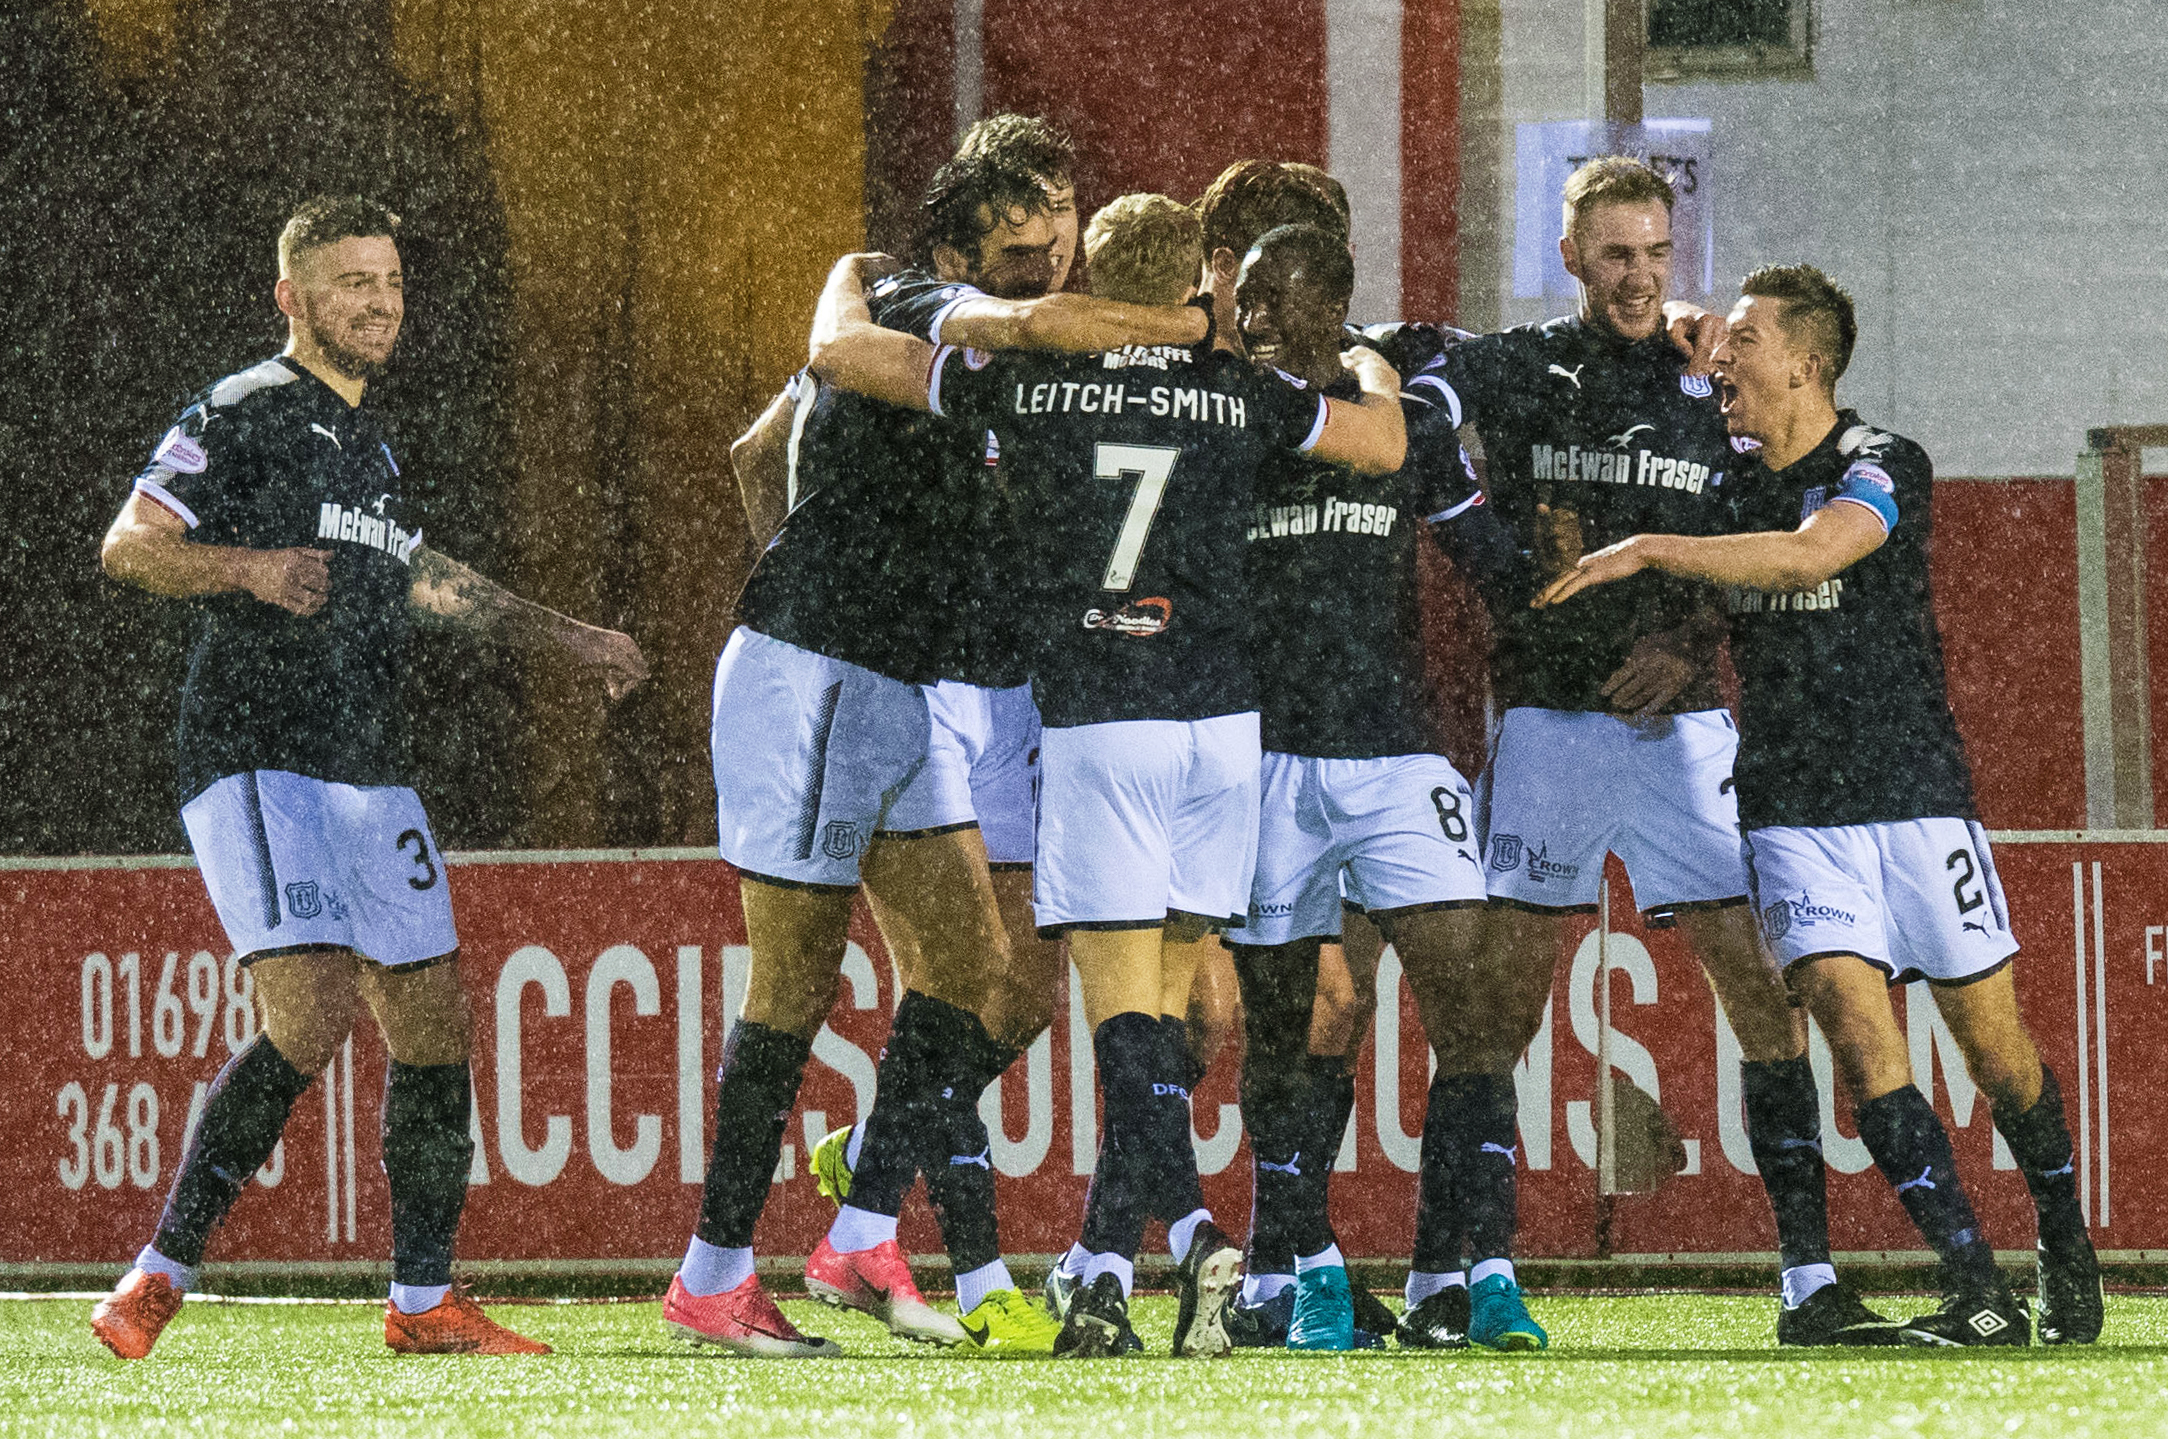 A-Jay Leitch-Smith (7) is mobbed by his Dundee teammates after his last-gasp winner.